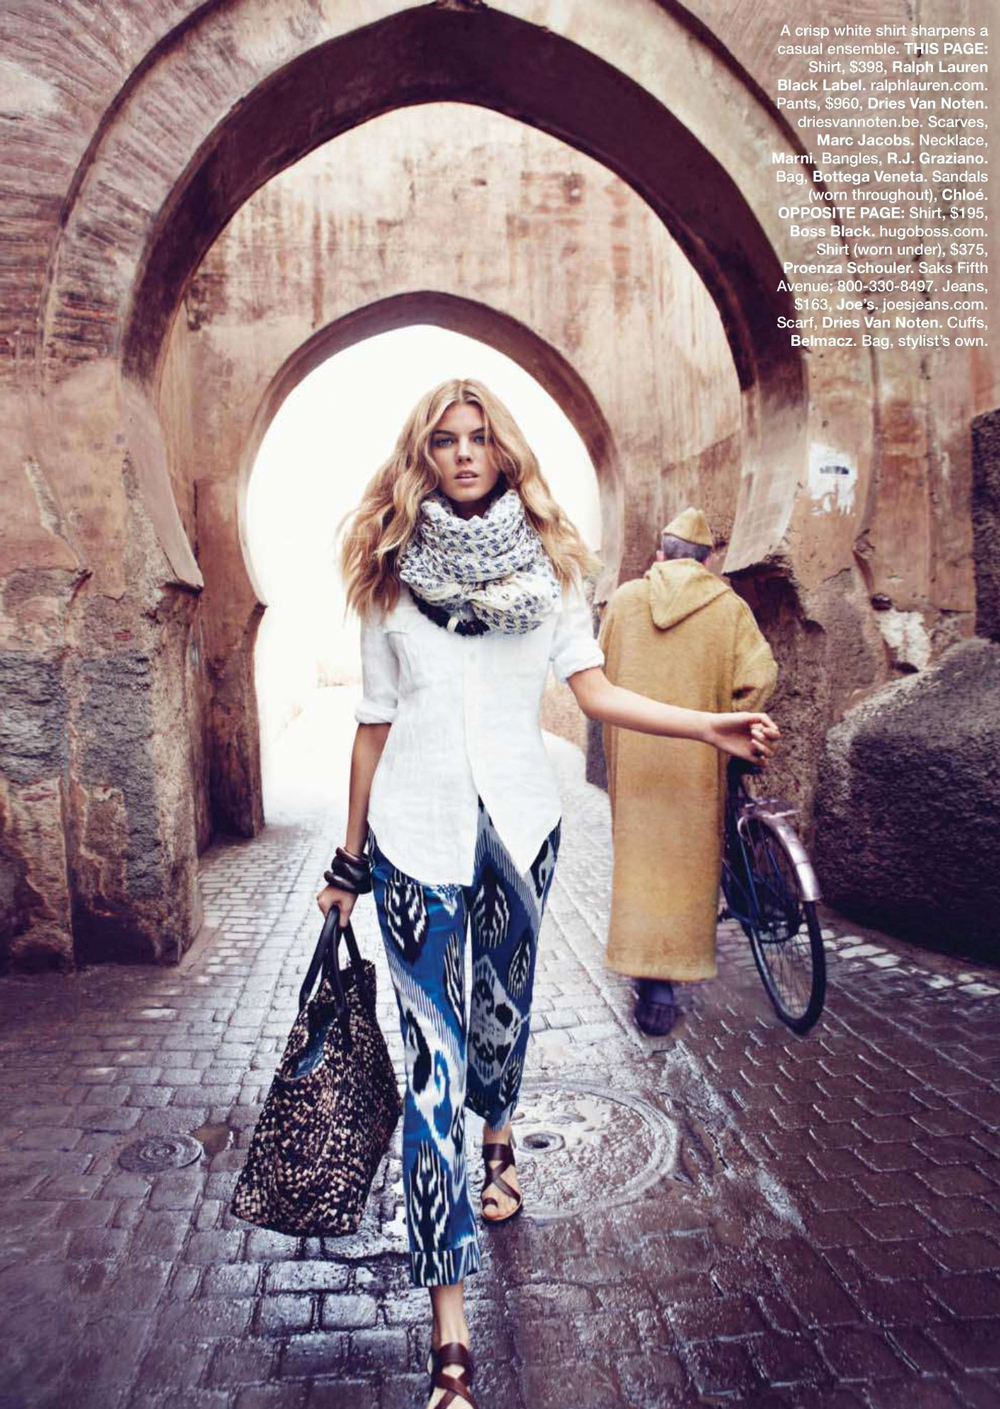 Maryna Linchuk in Marrakech moment / Harper's Bazaar US March 2010 (photography: Lachlan Bailey, styling: Alastair McKimm) via fashioned by love british fashion blog